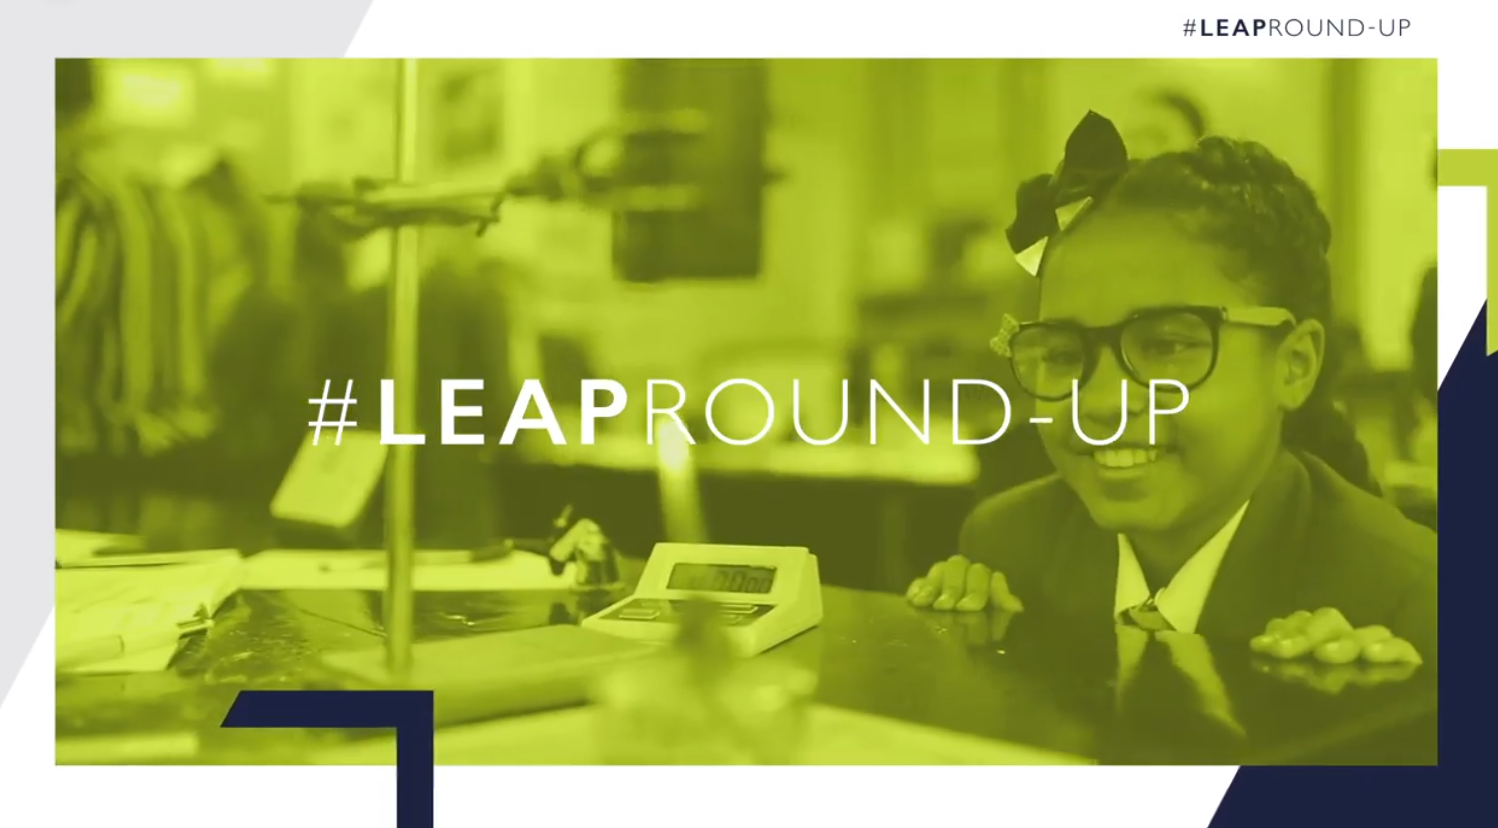 Trust Newsletter March 2021 #LEAPROUNDUP